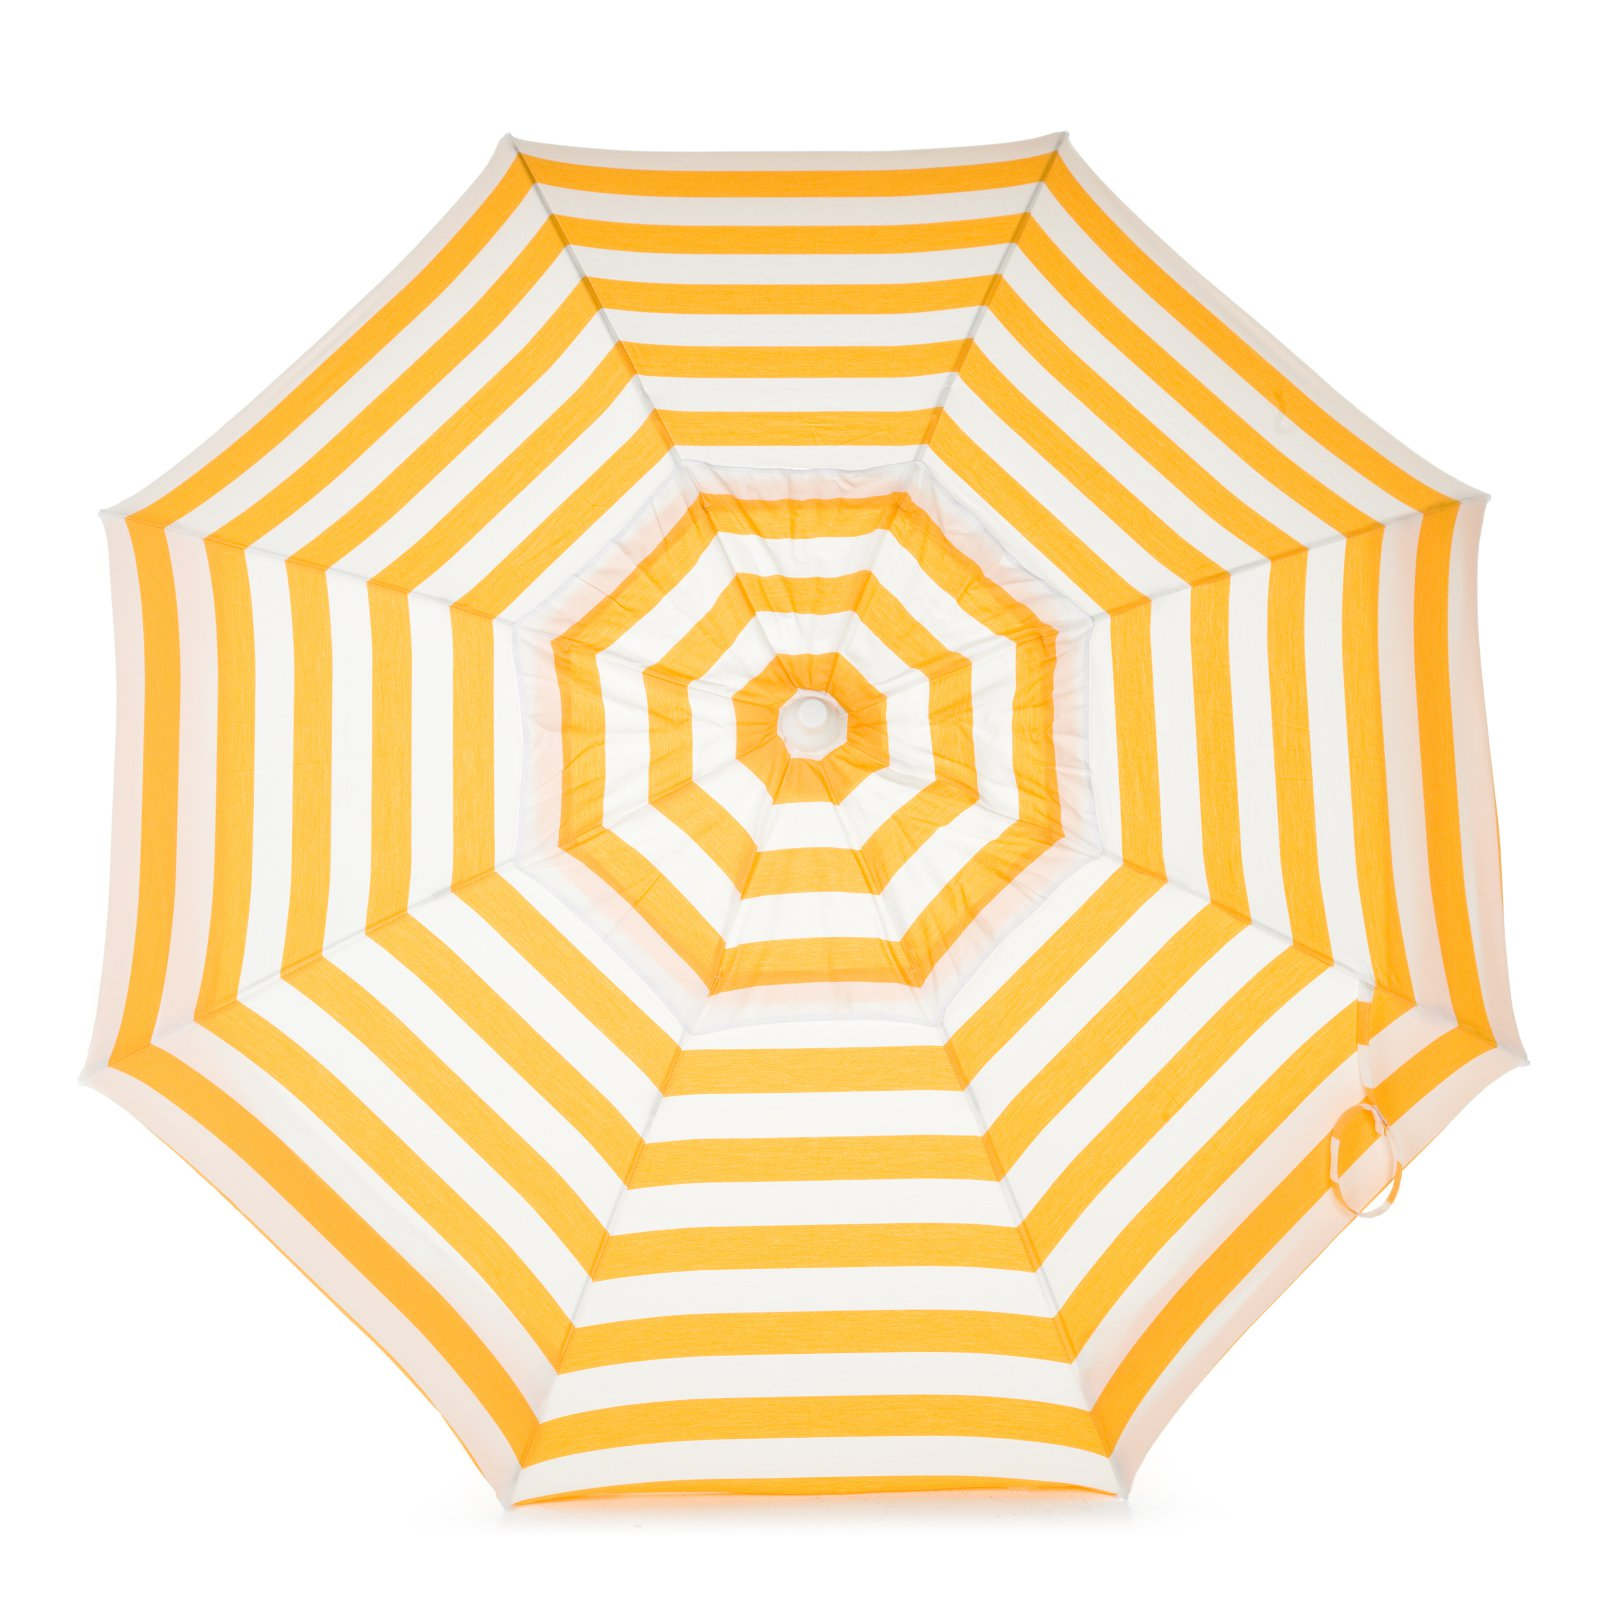 DestinationGear Italian 6' Umbrella Acrylic Stripes Yellow and White Patio Pole